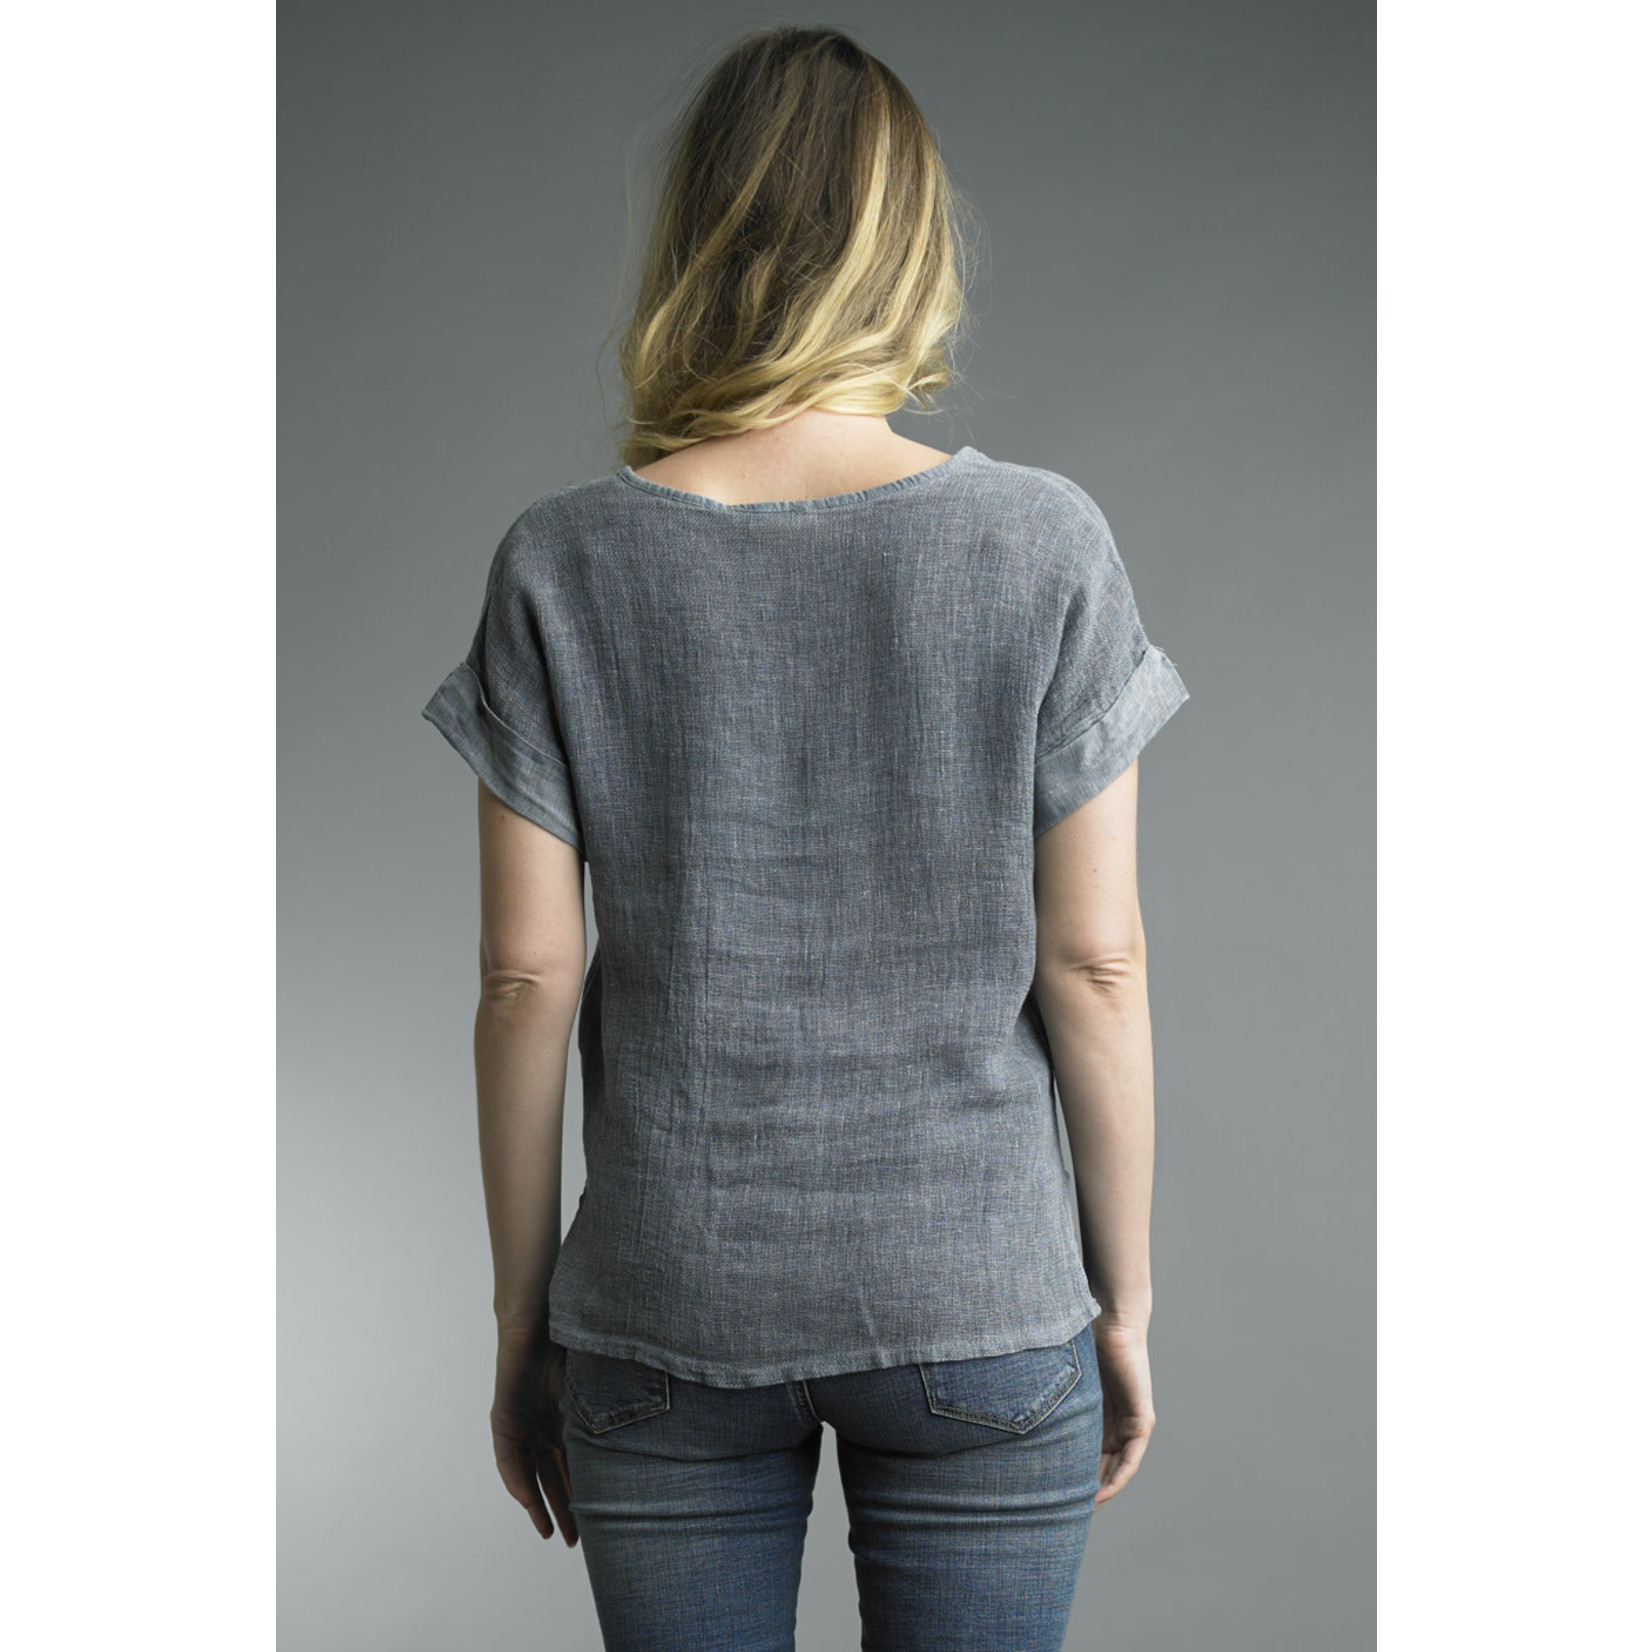 Tempo Paris Linen V-Neck Tee in Denim Color w/ Cuff Sleeves